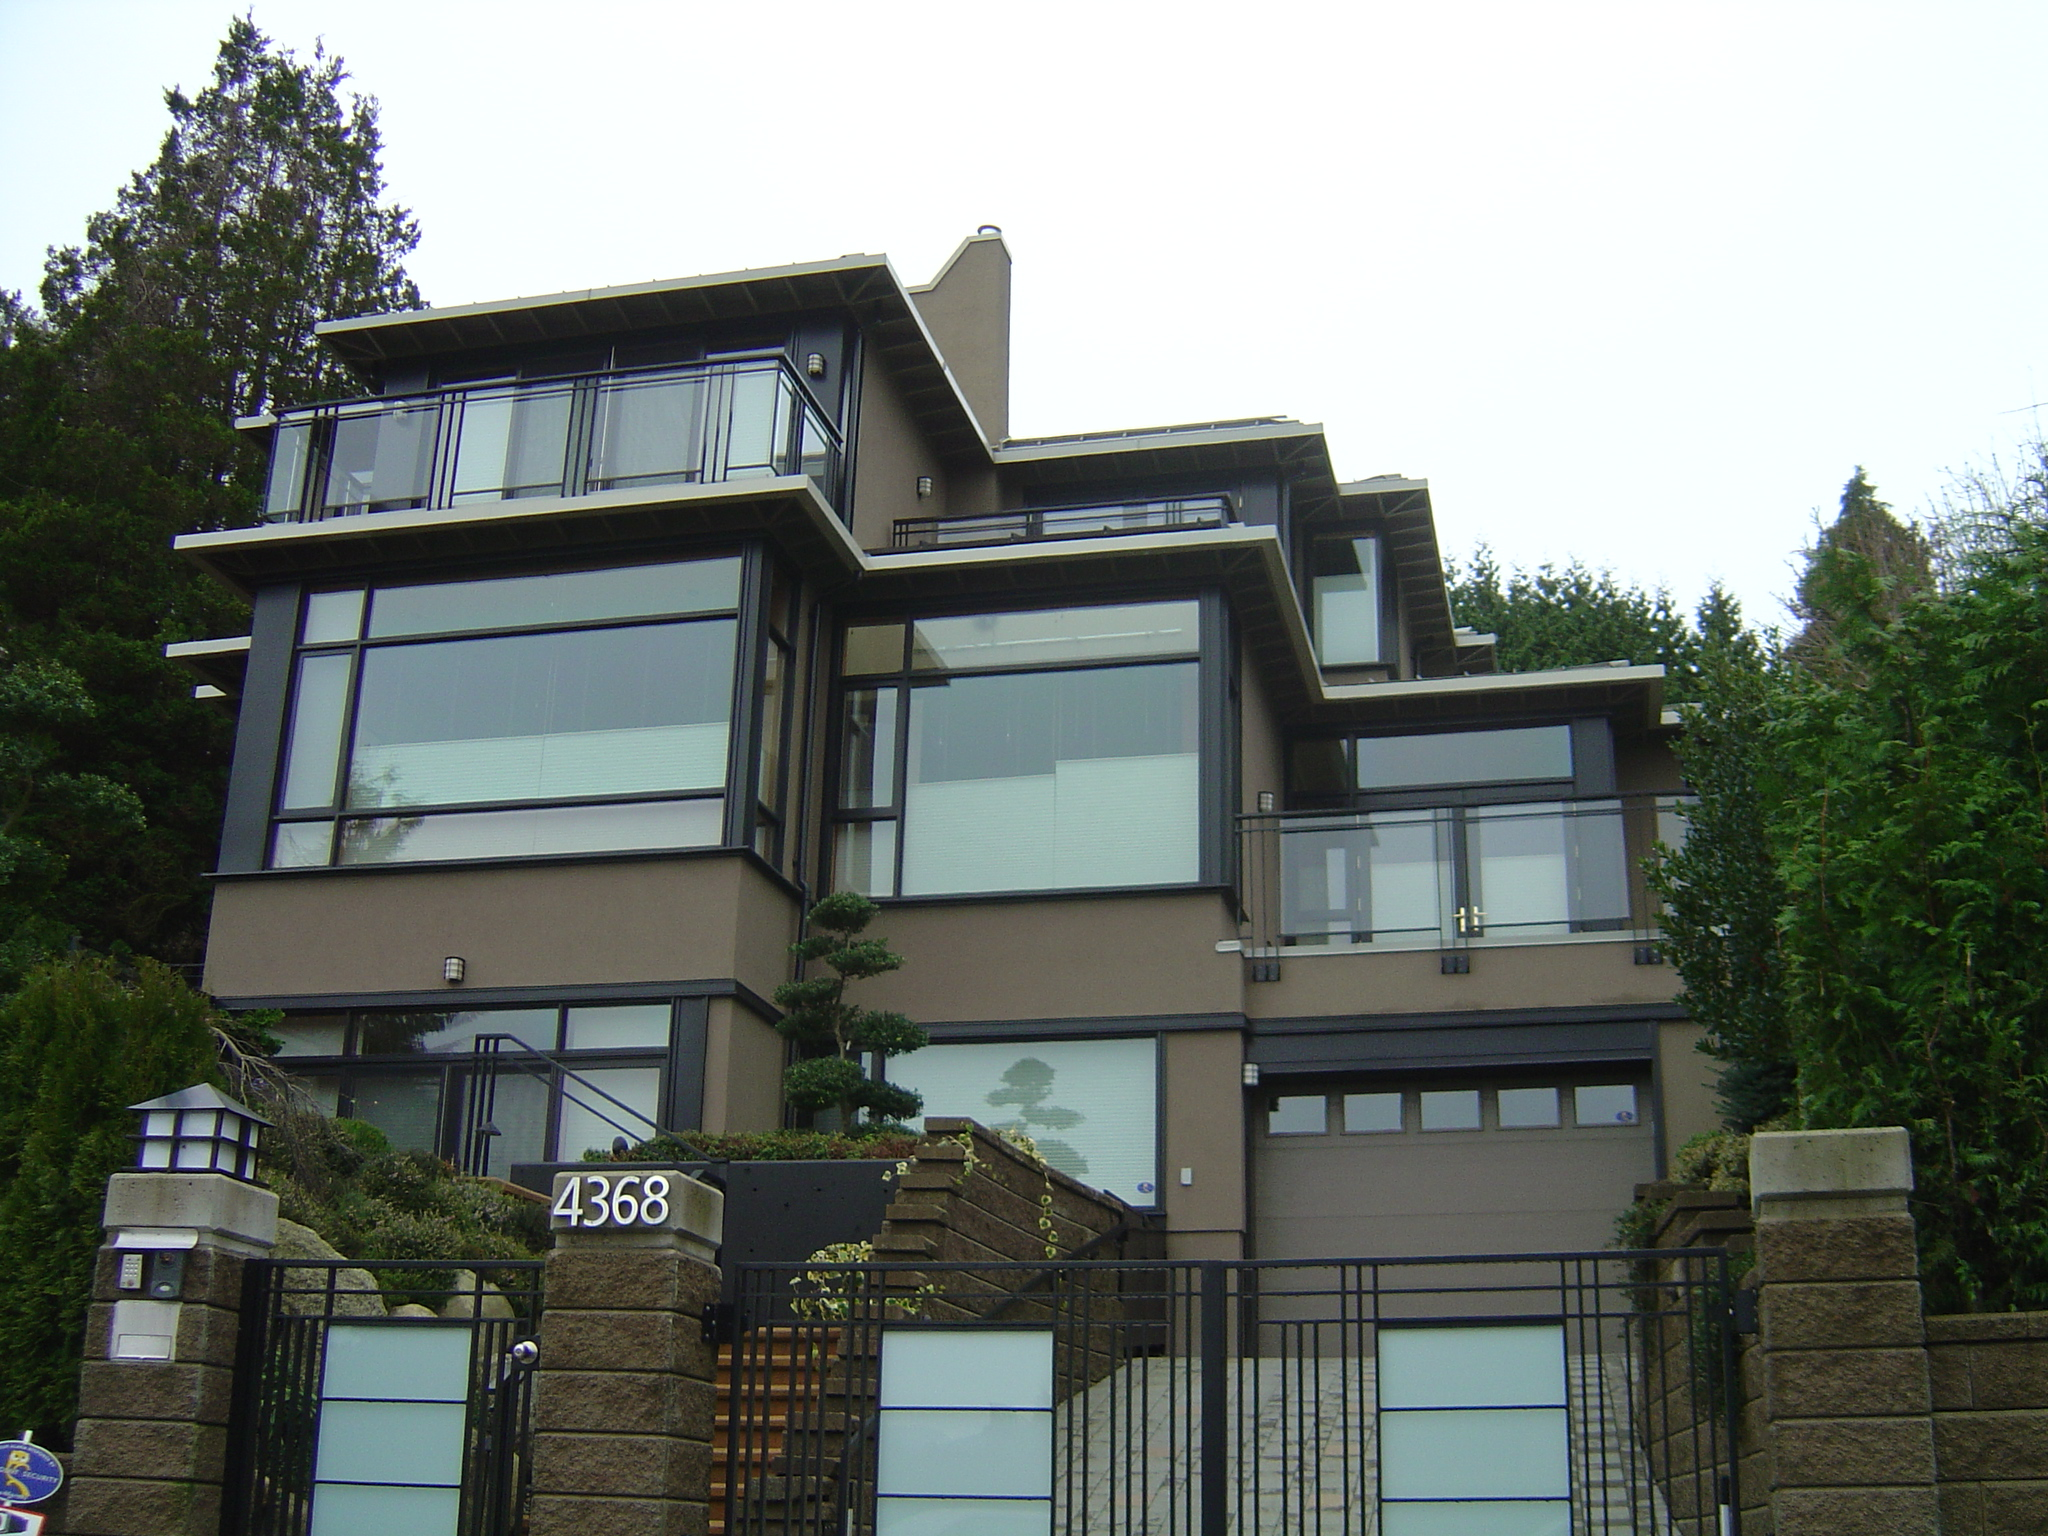 Modern vancouver house flickr photo sharing Modern houses with big windows